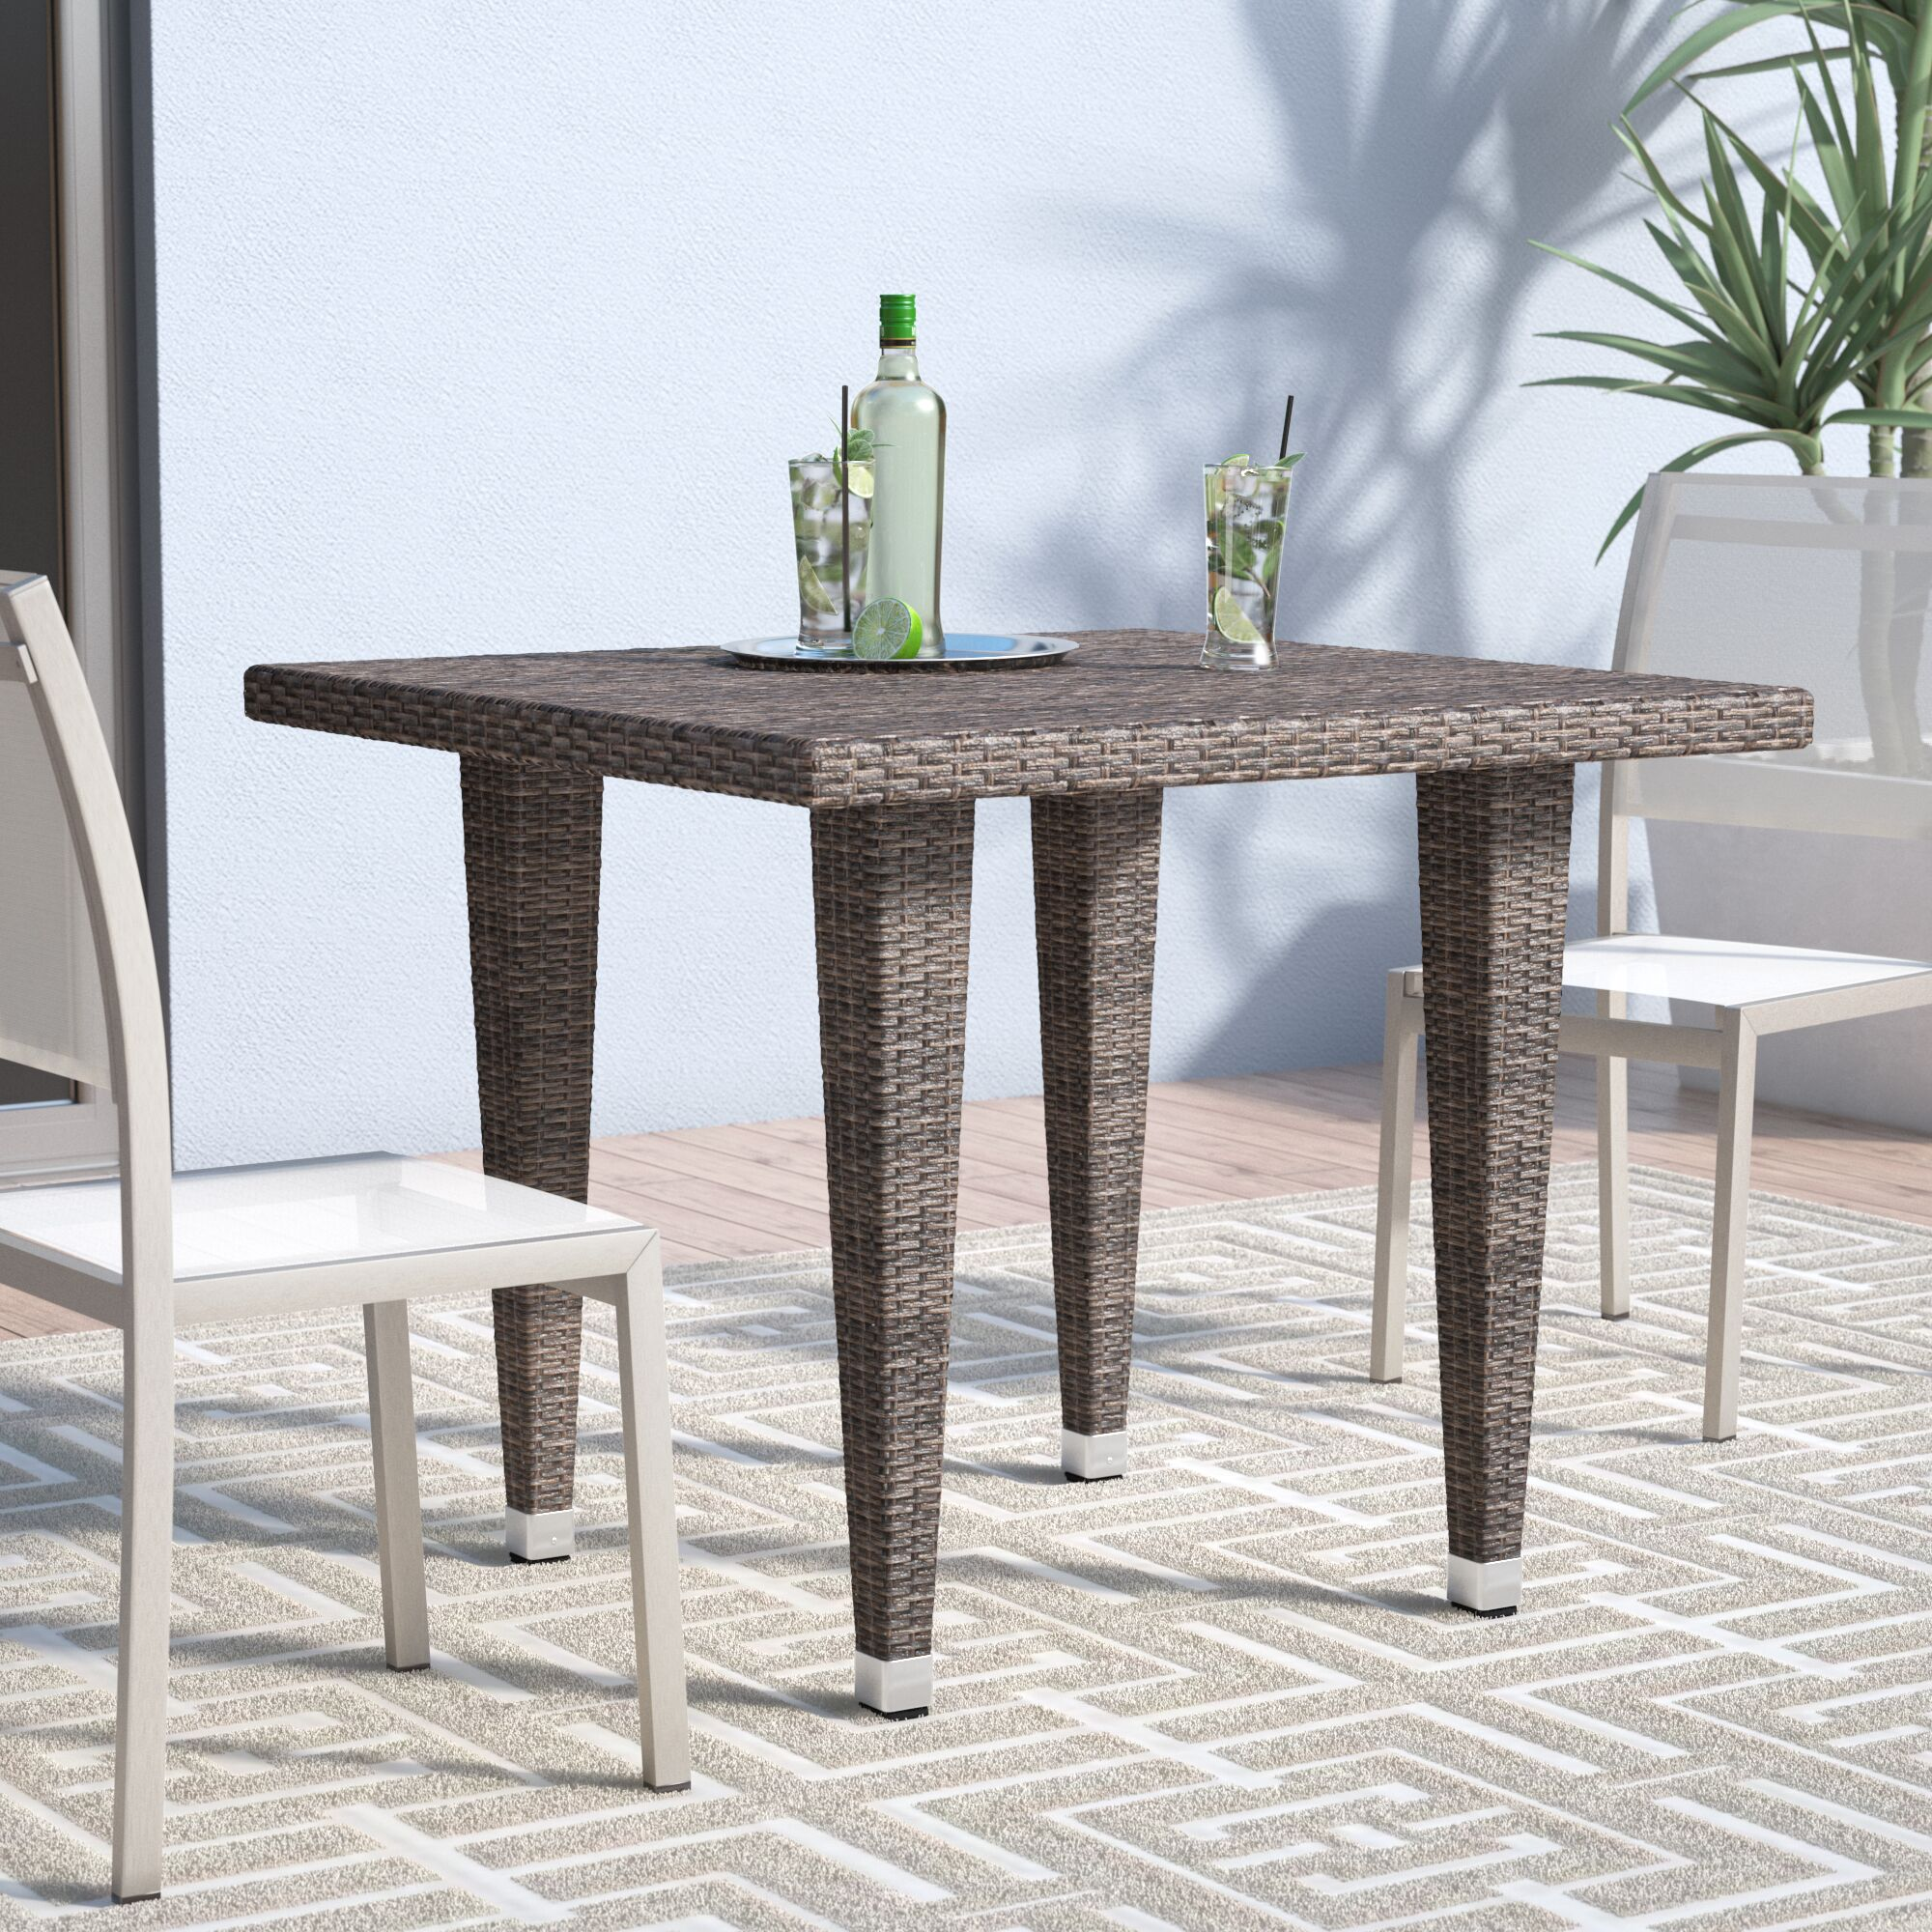 Weishaar Outdoor Wicker Dining Table Color: Mix Mocha